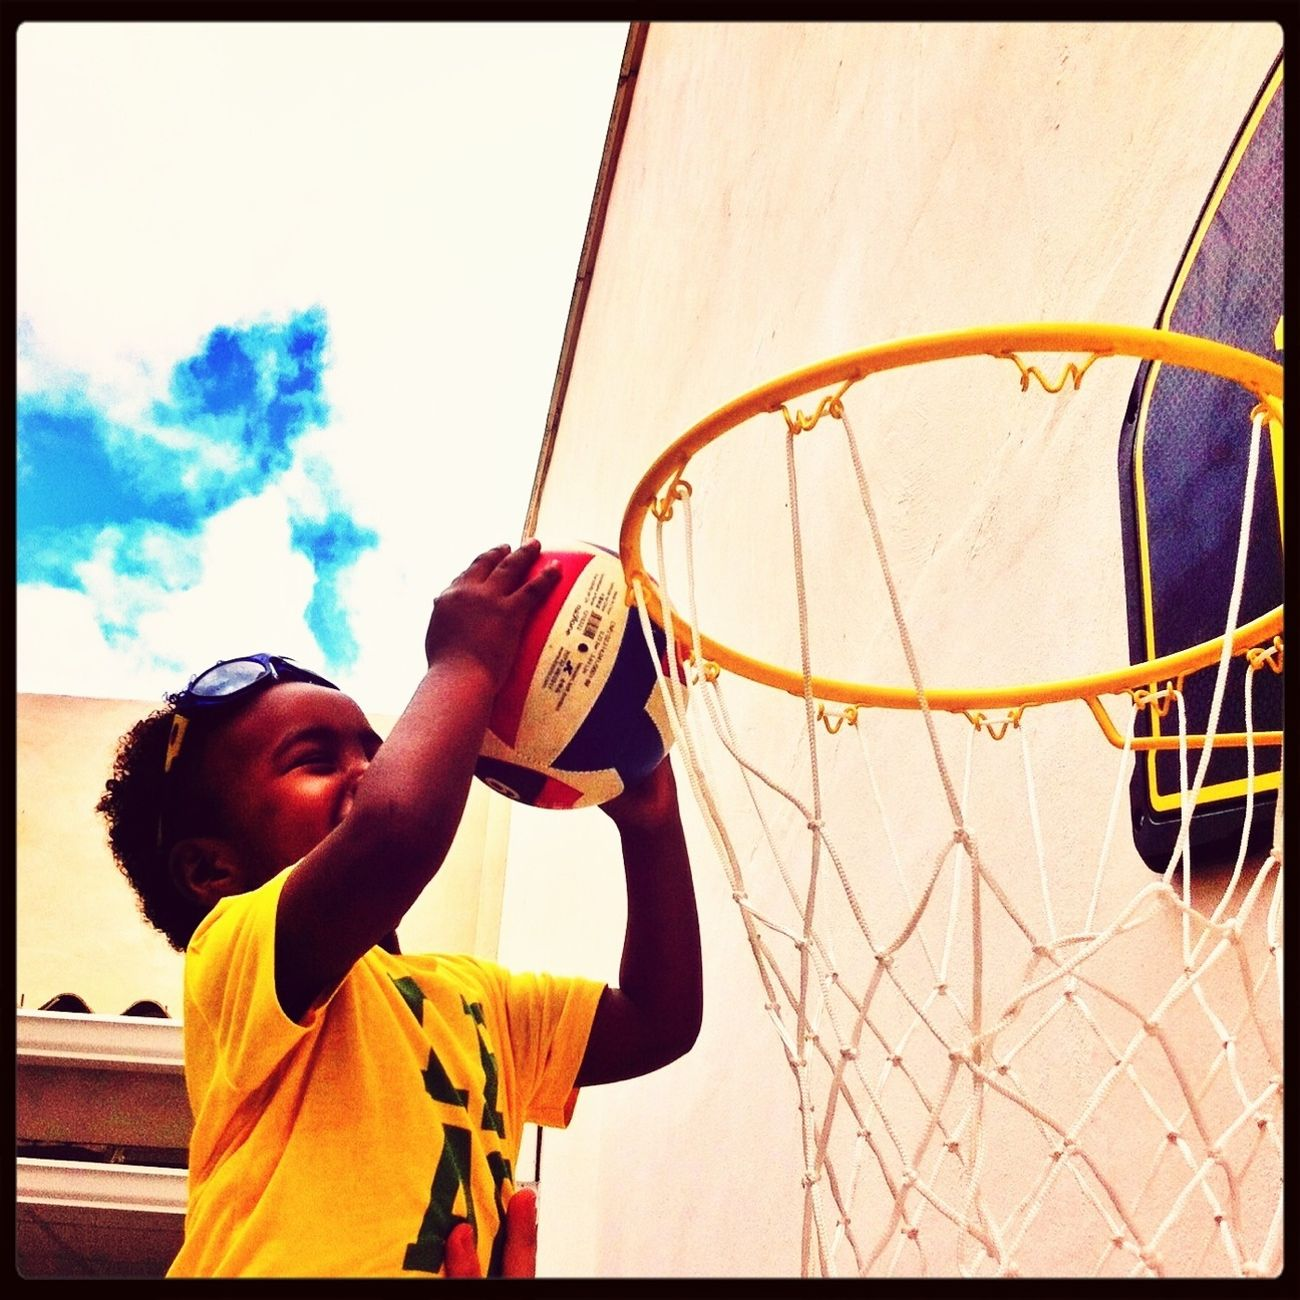 Basketball Children's Portraits I Love This Game Aner